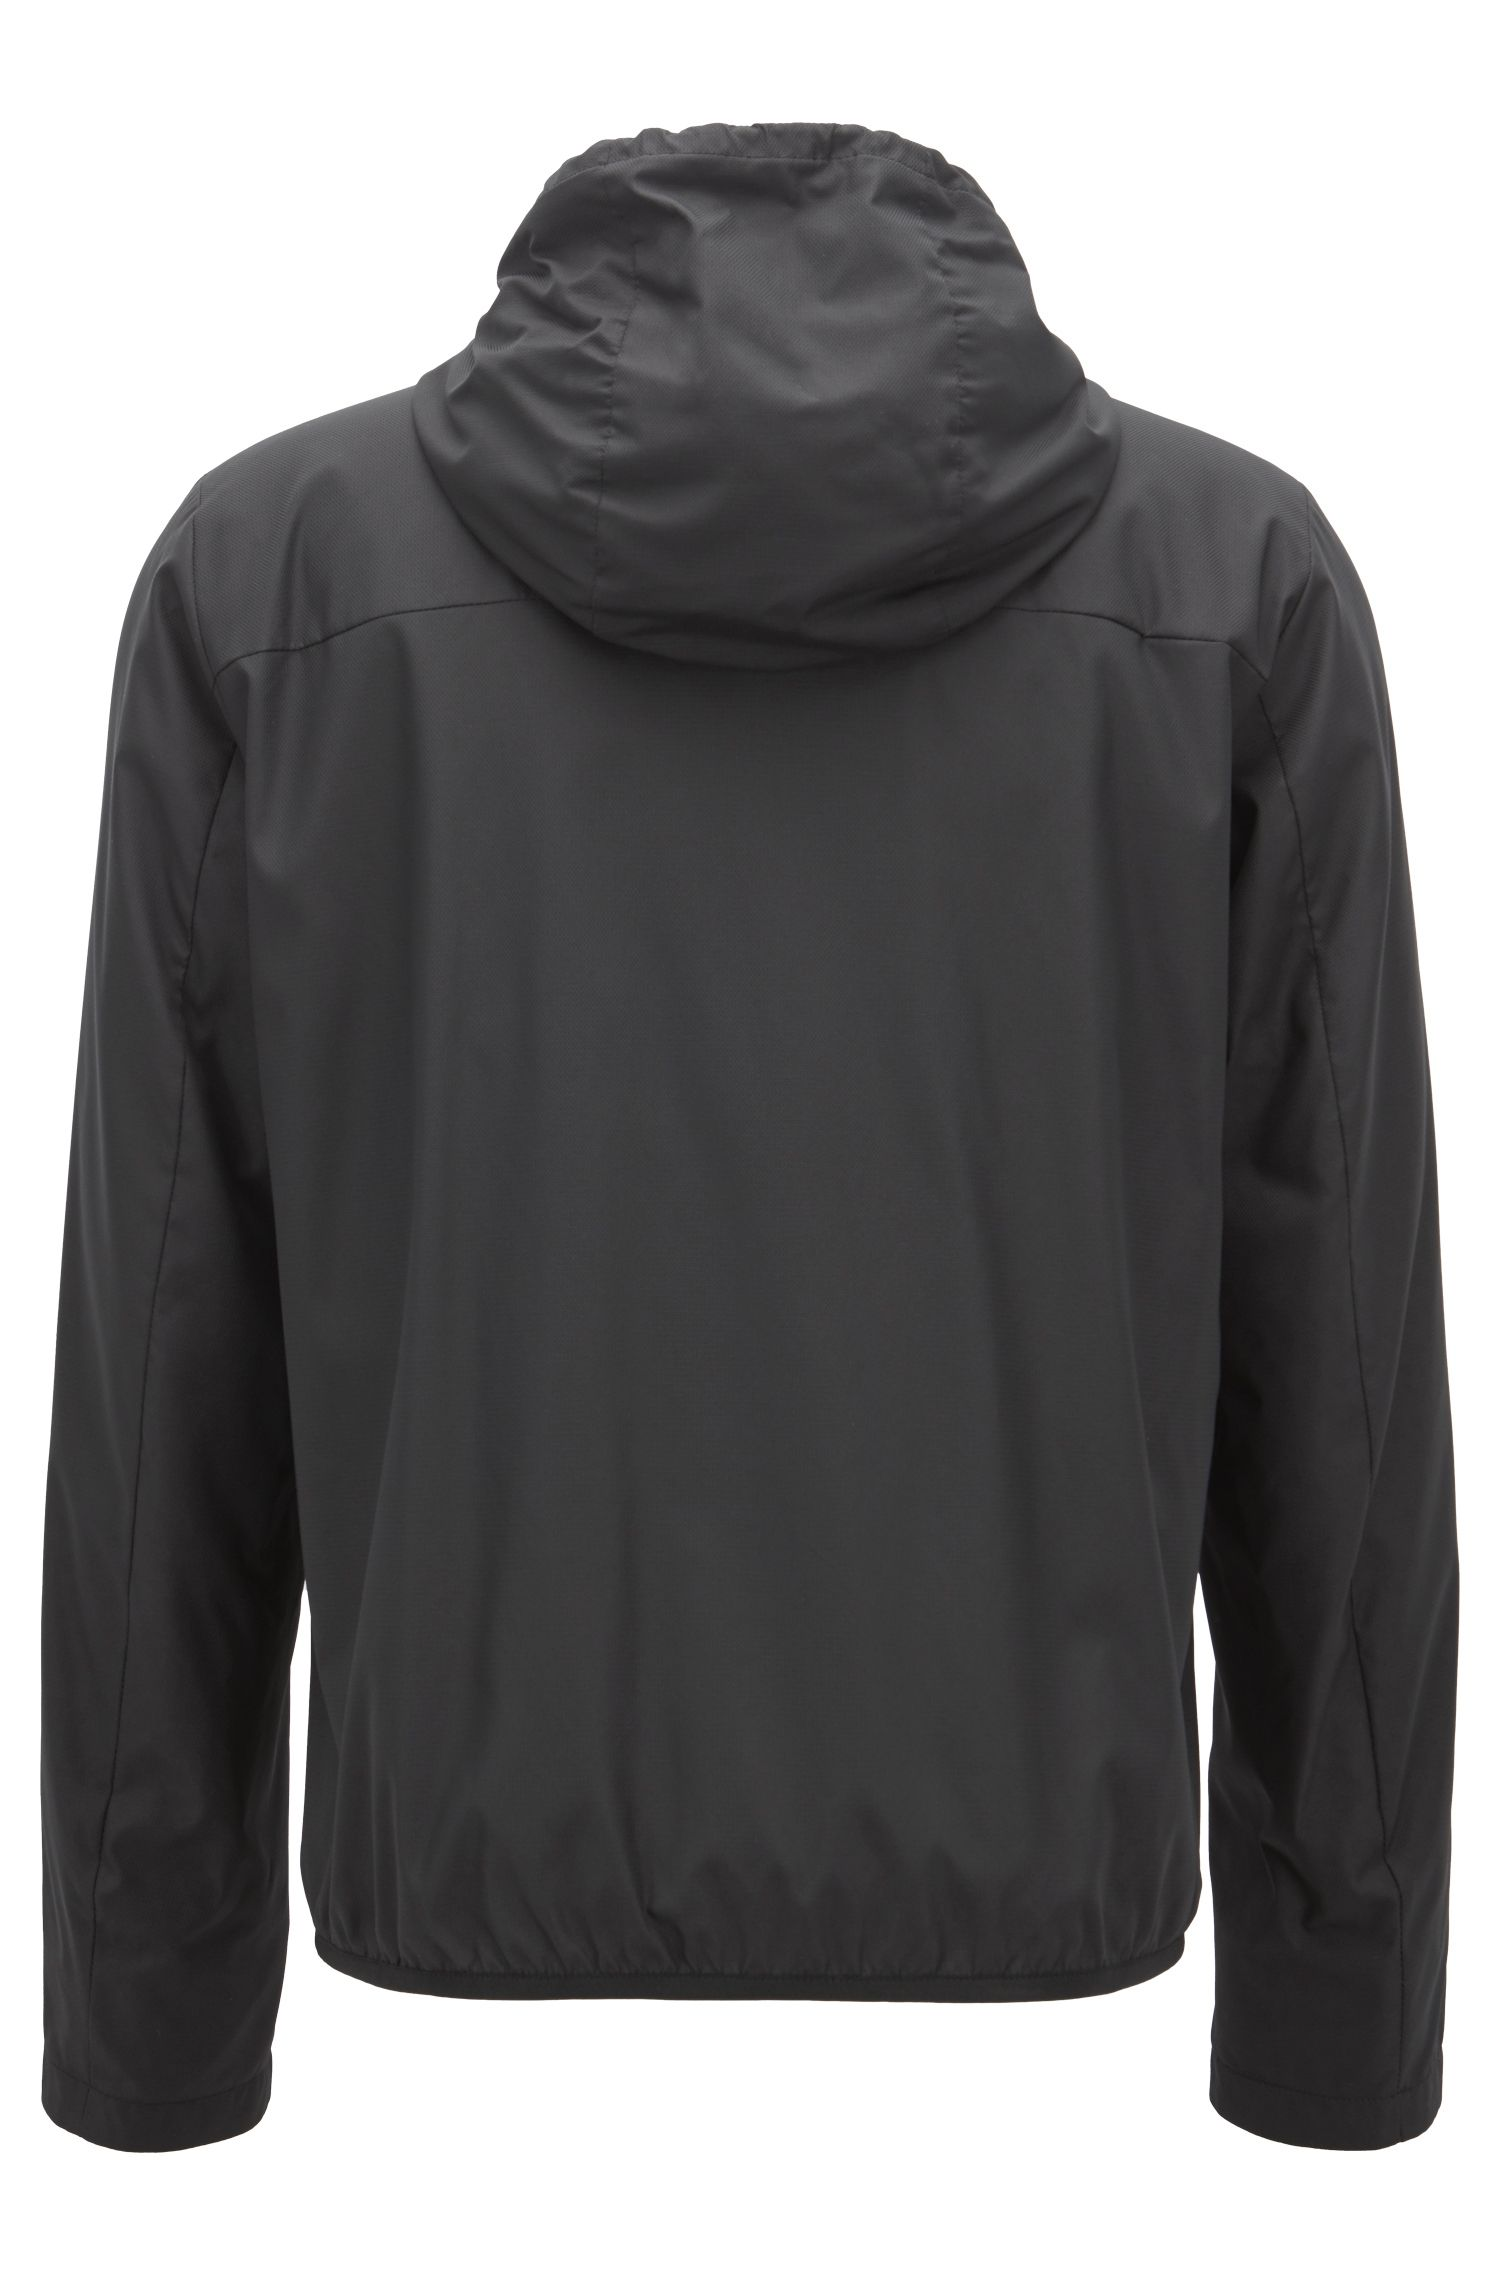 Water-repellent jacket in lightweight fabric with logo details